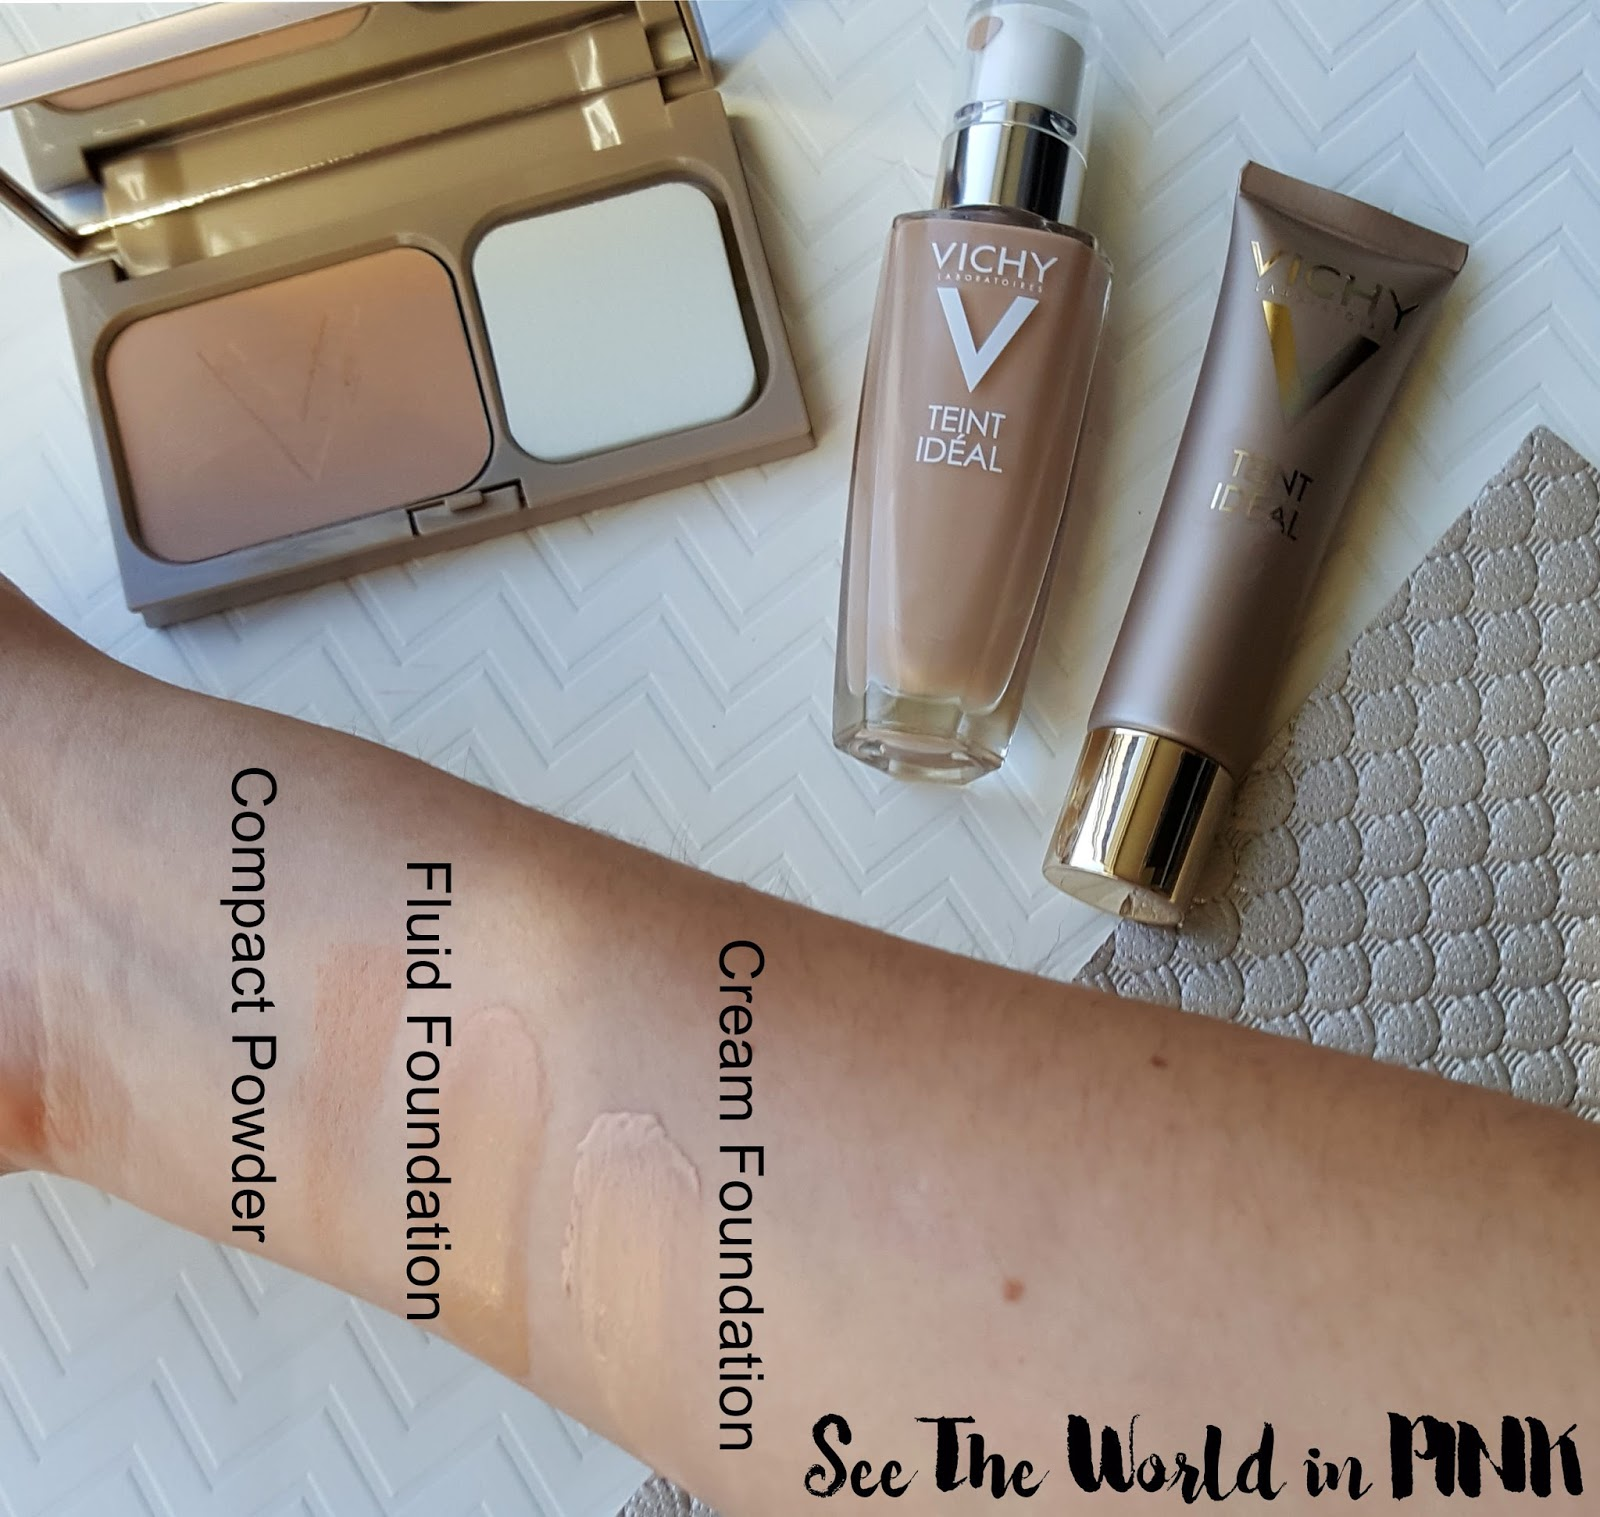 Vichy Teint Ideal Makeup - Swatches and Reviews!